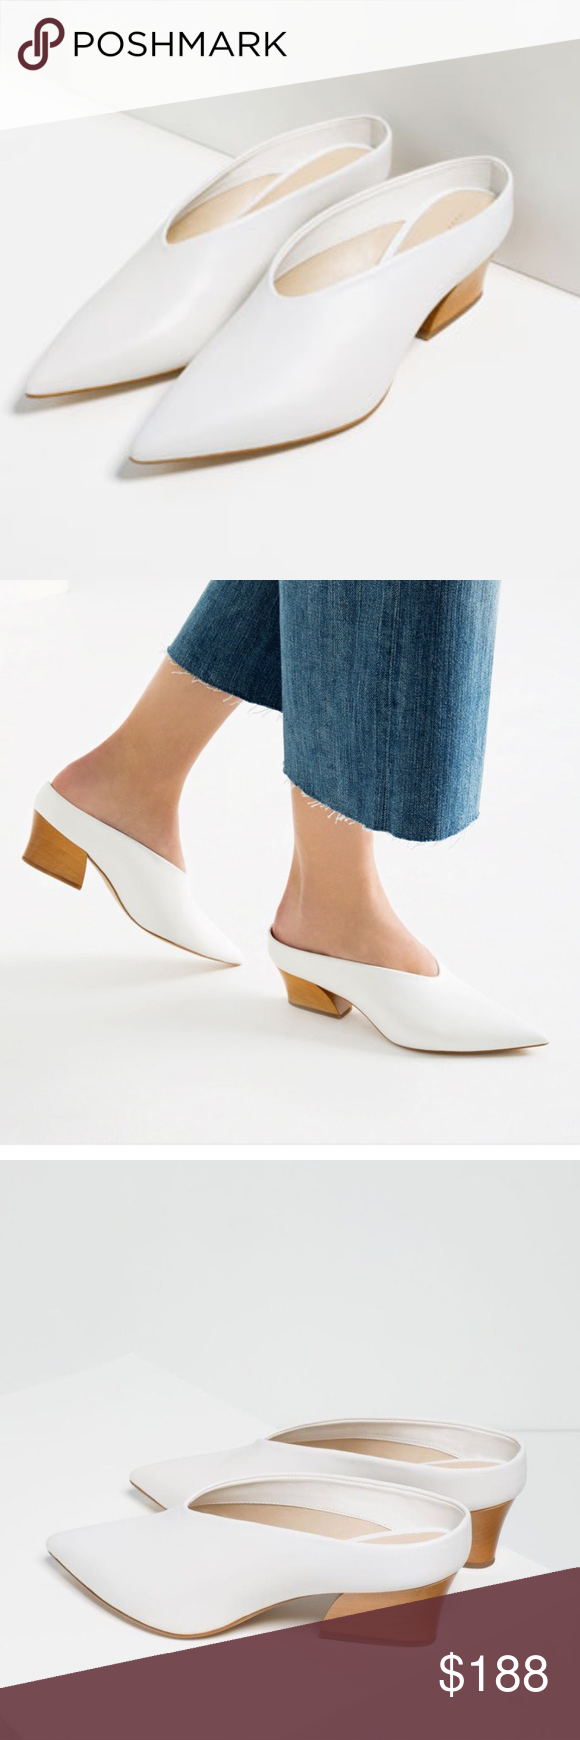 7262f49f9449 Zara White Leather Mules New with tag. Value is beyond price due to unique  design